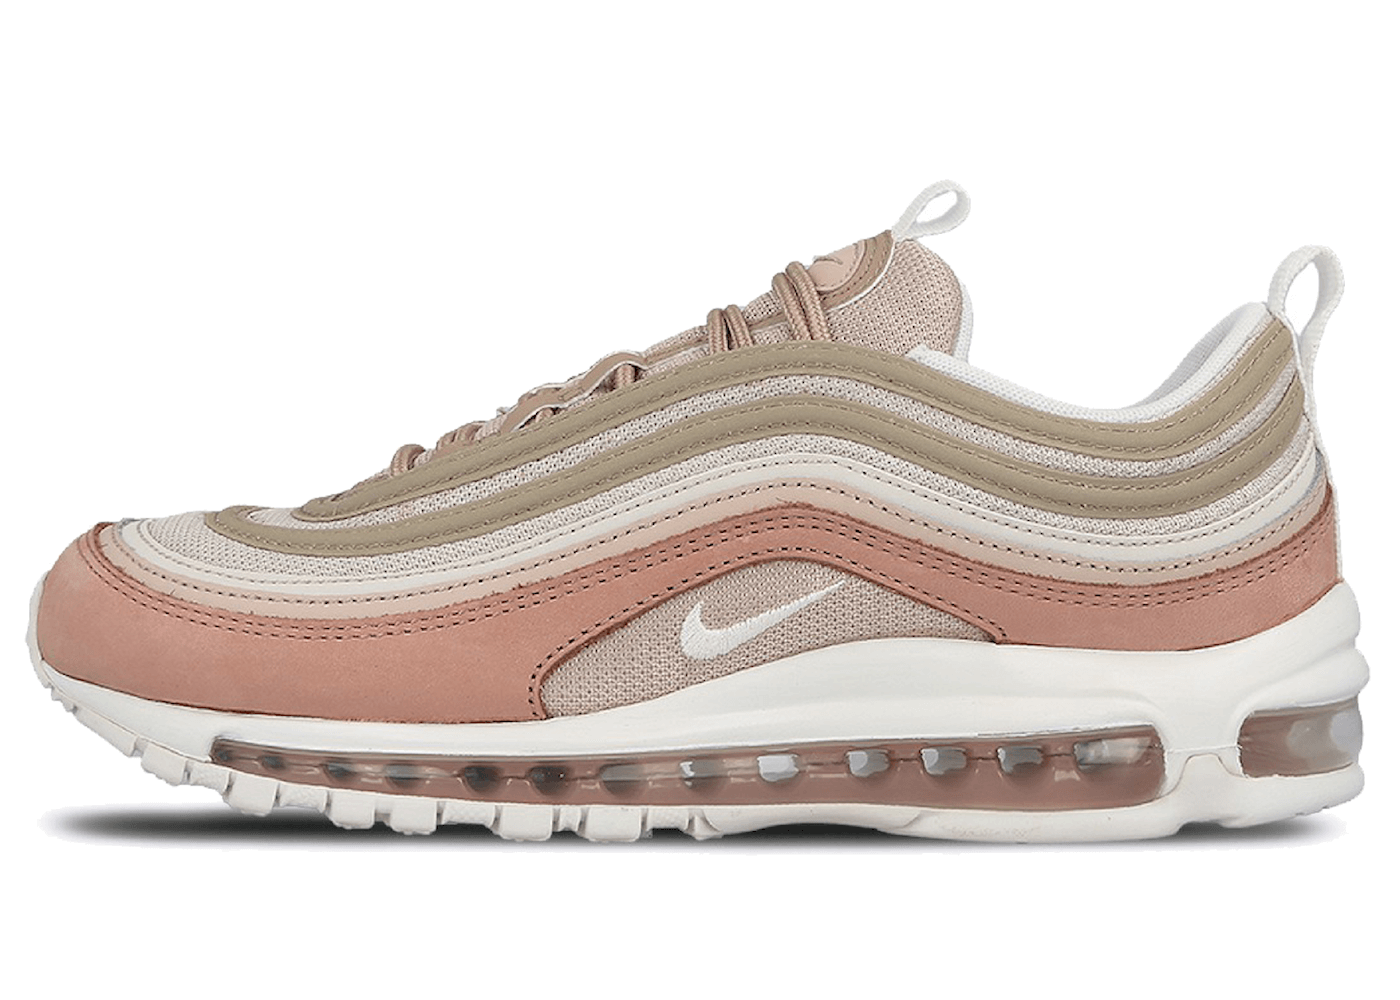 Air Max 97 Particle Beigeの写真